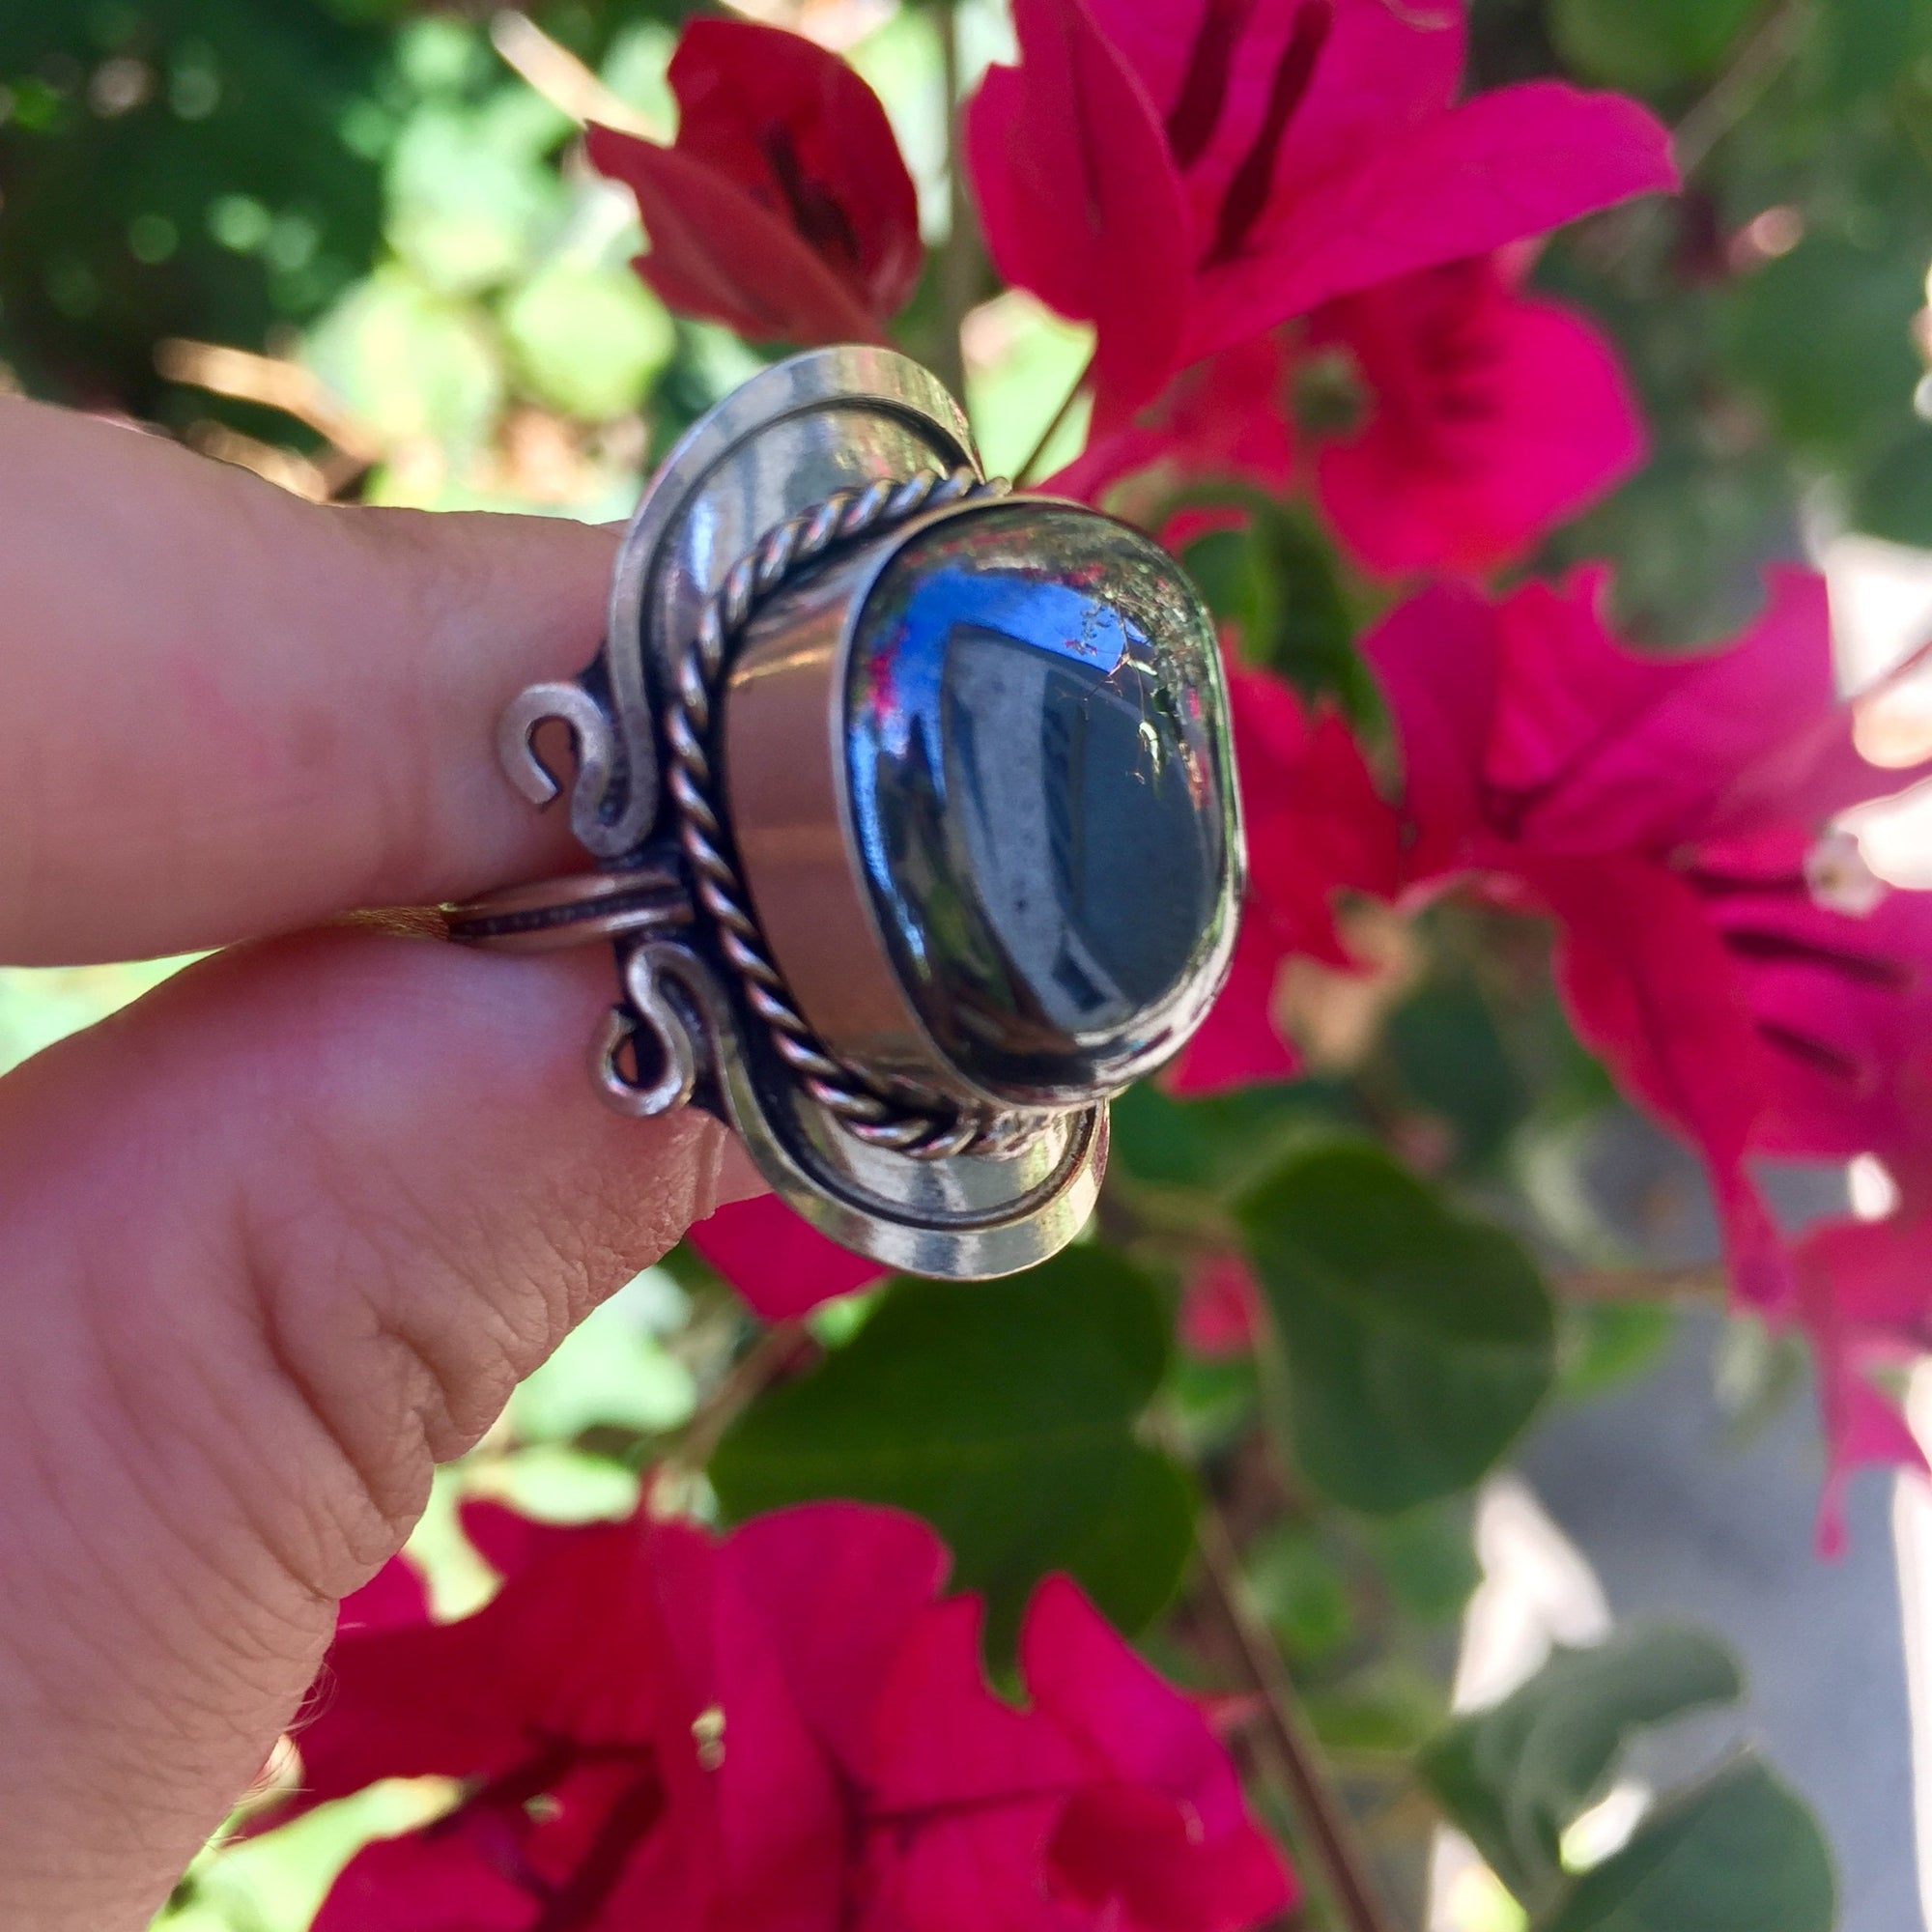 Hematite Crystal Ring - Sparkle Rock Pop